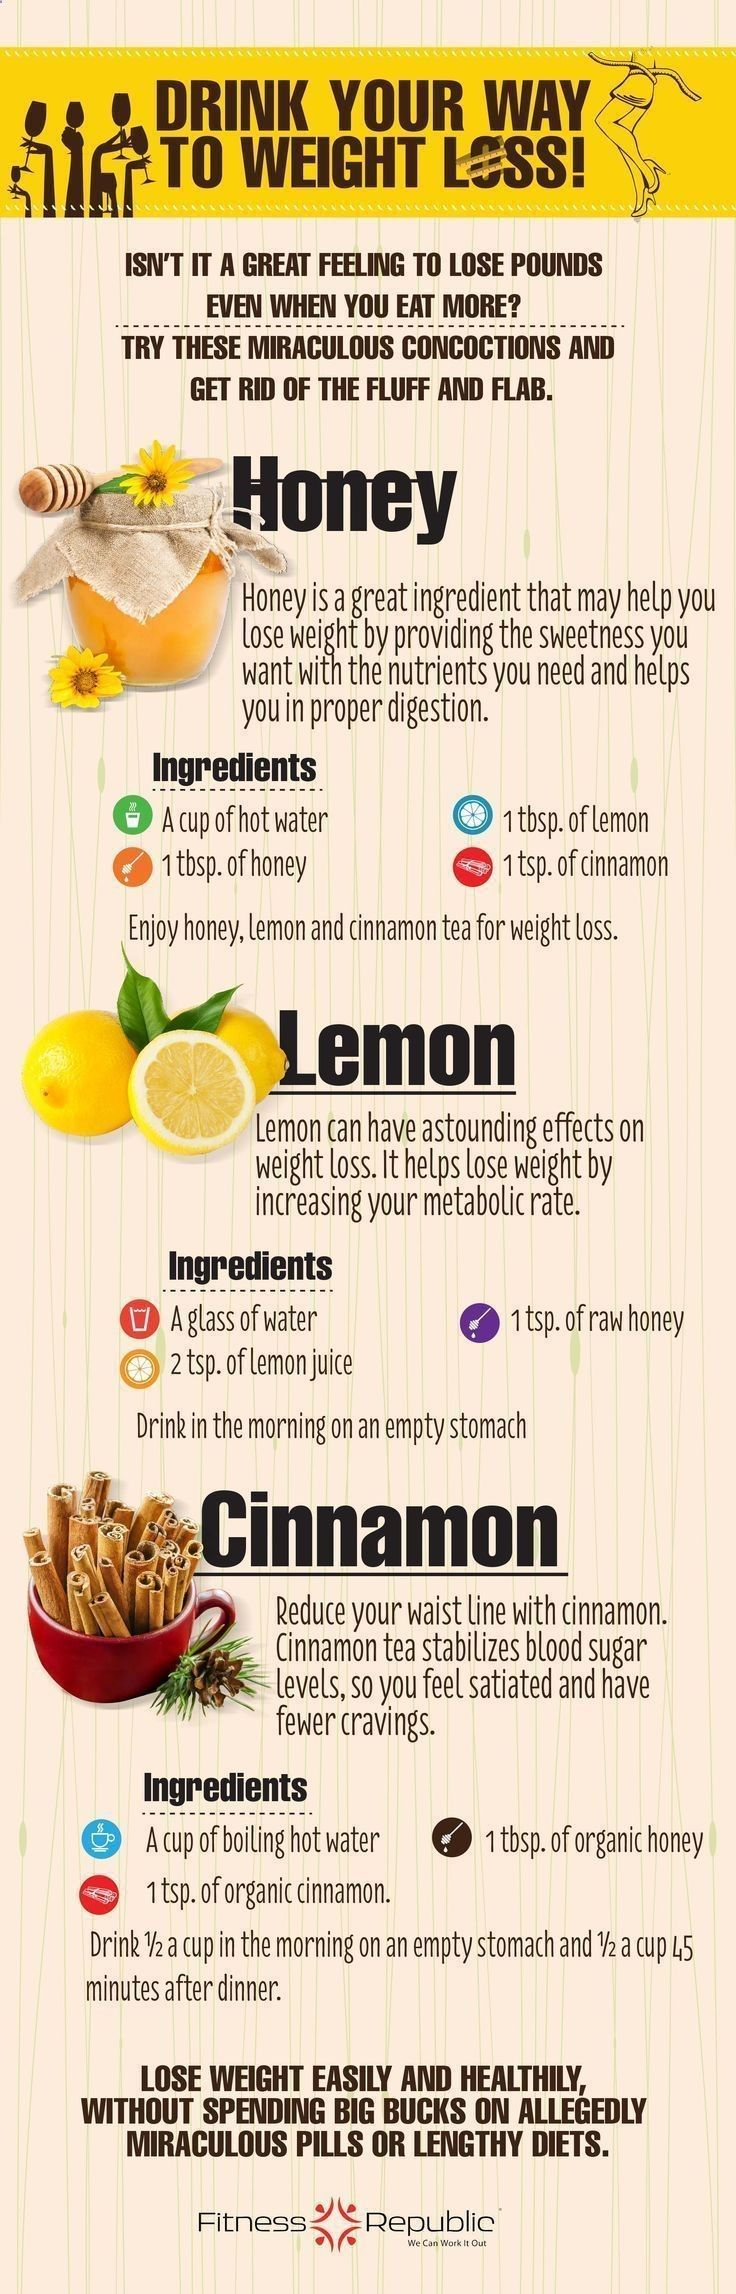 Does lime water help burn fat image 4